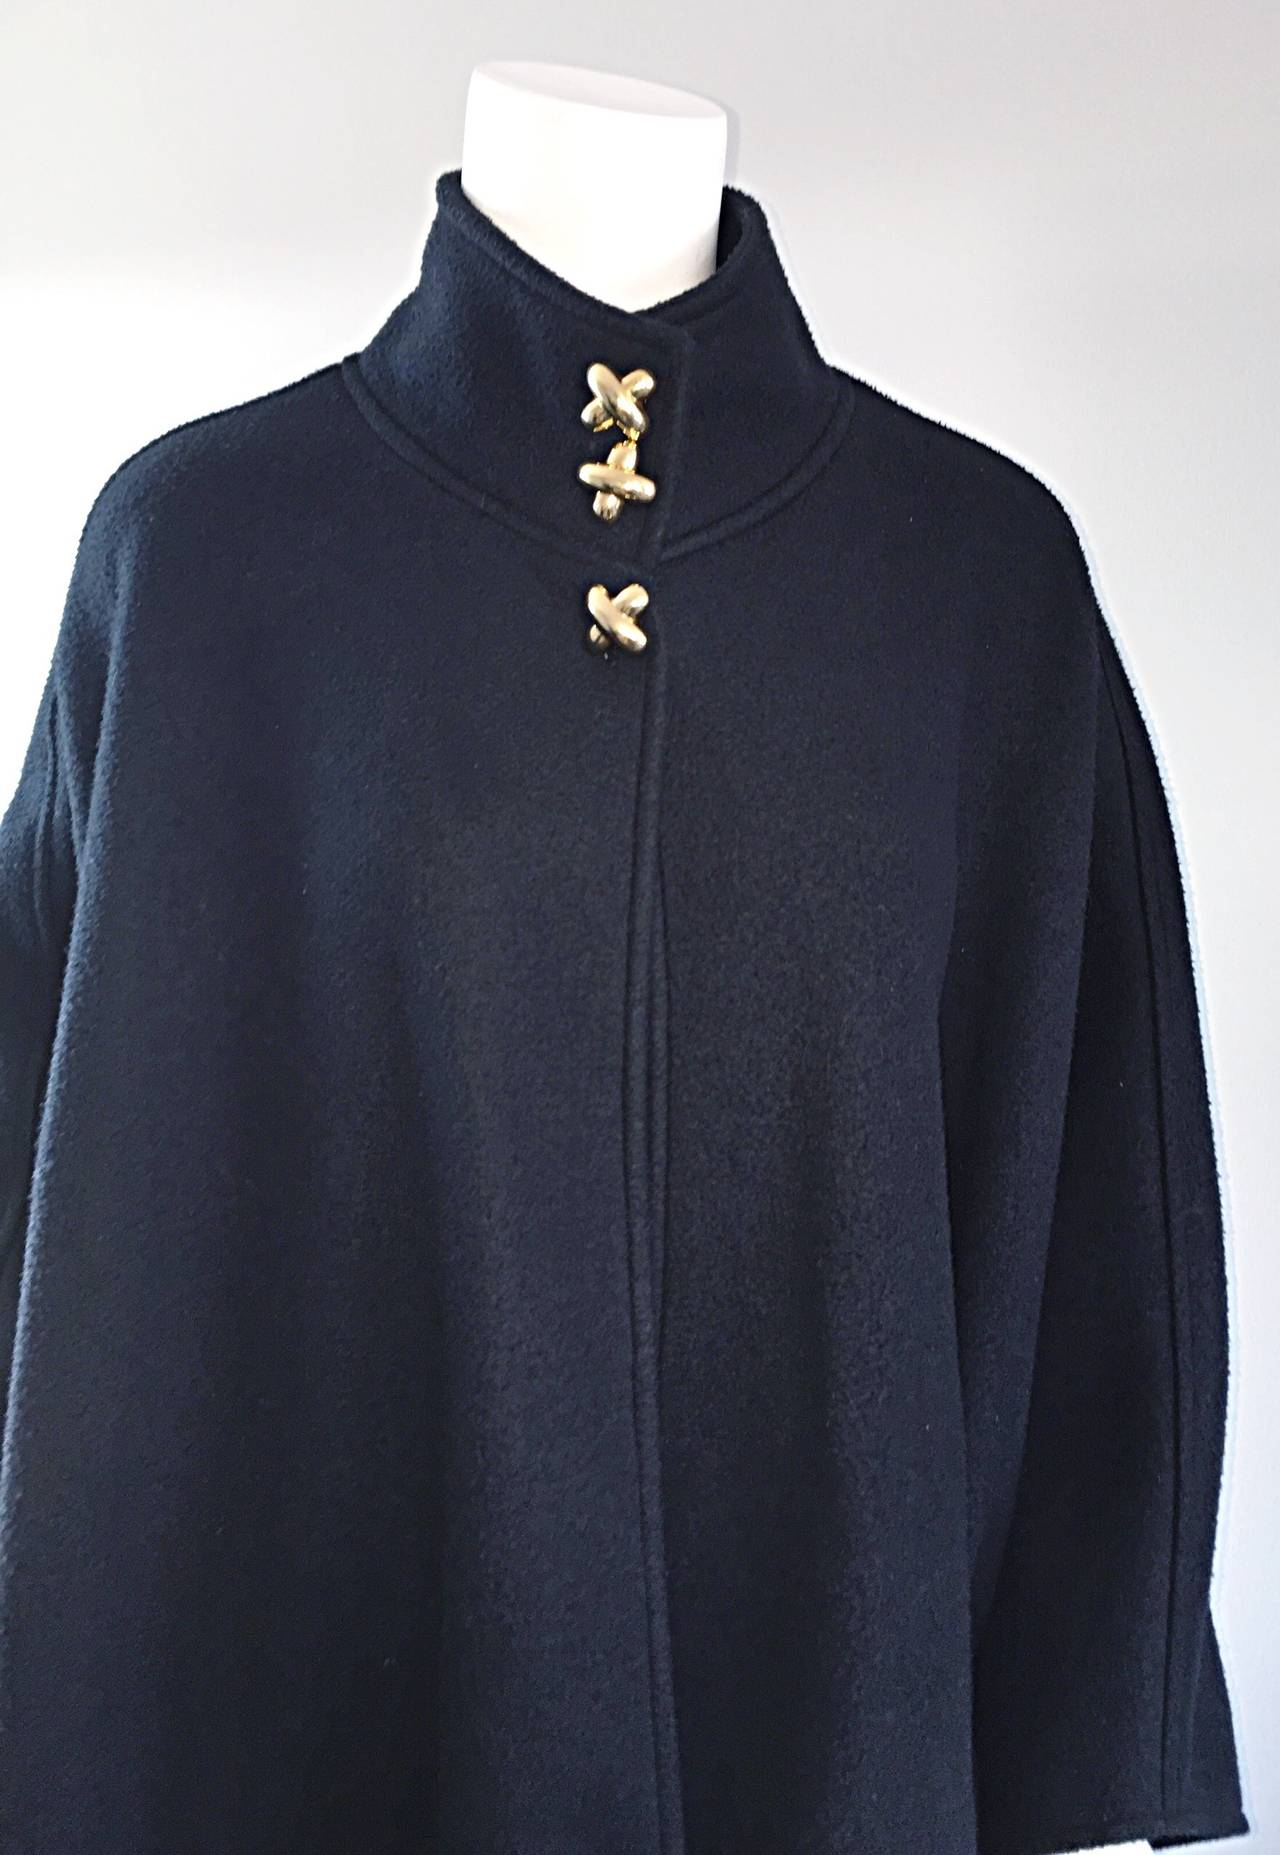 Vintage Lord & Taylor Black Fleece Cape Jacket w/ Gold ' Picasso ' Buttons 4